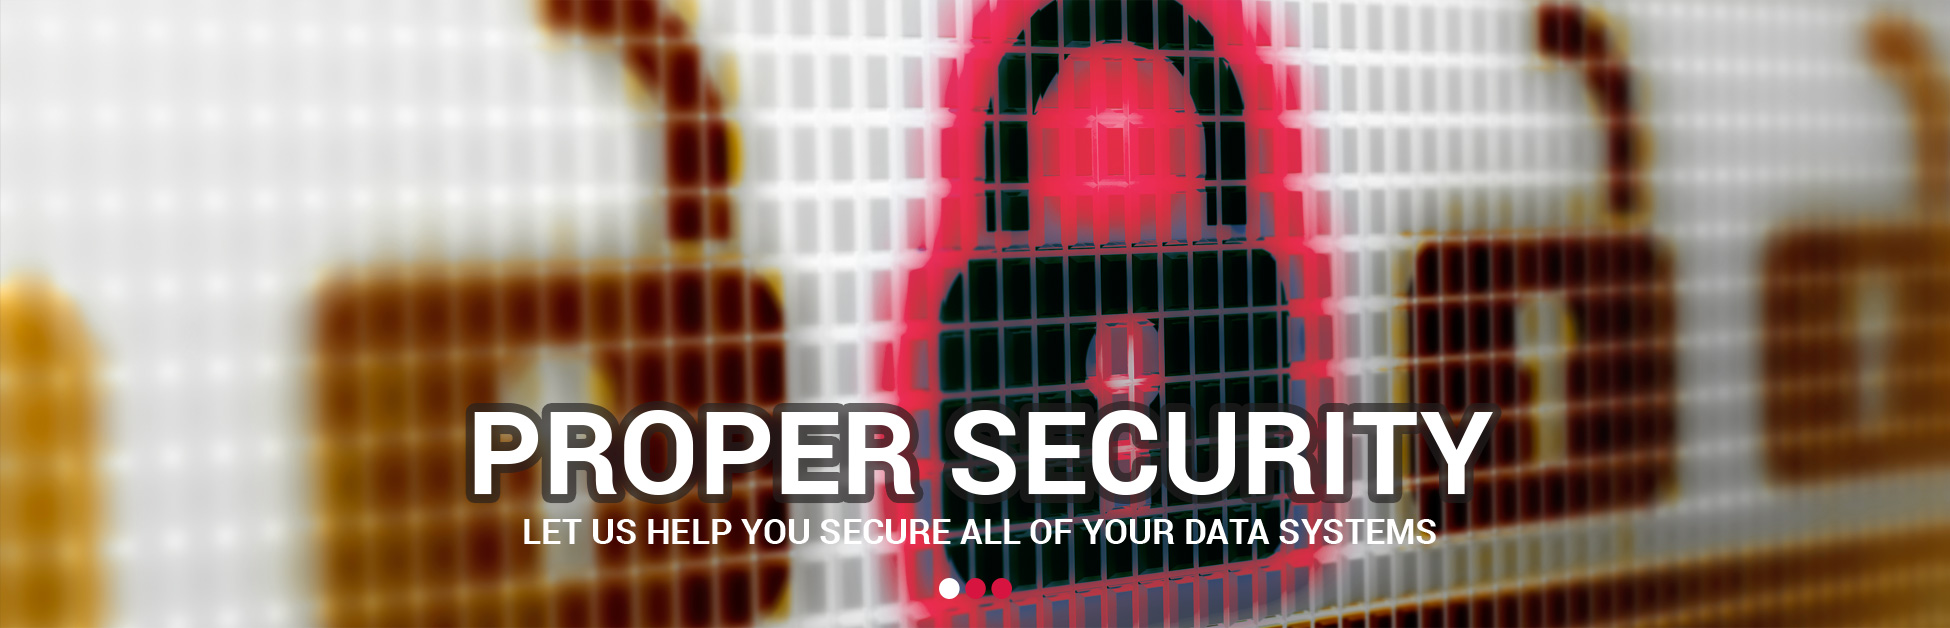 Proper Security - Let us help you secure all of your data systems